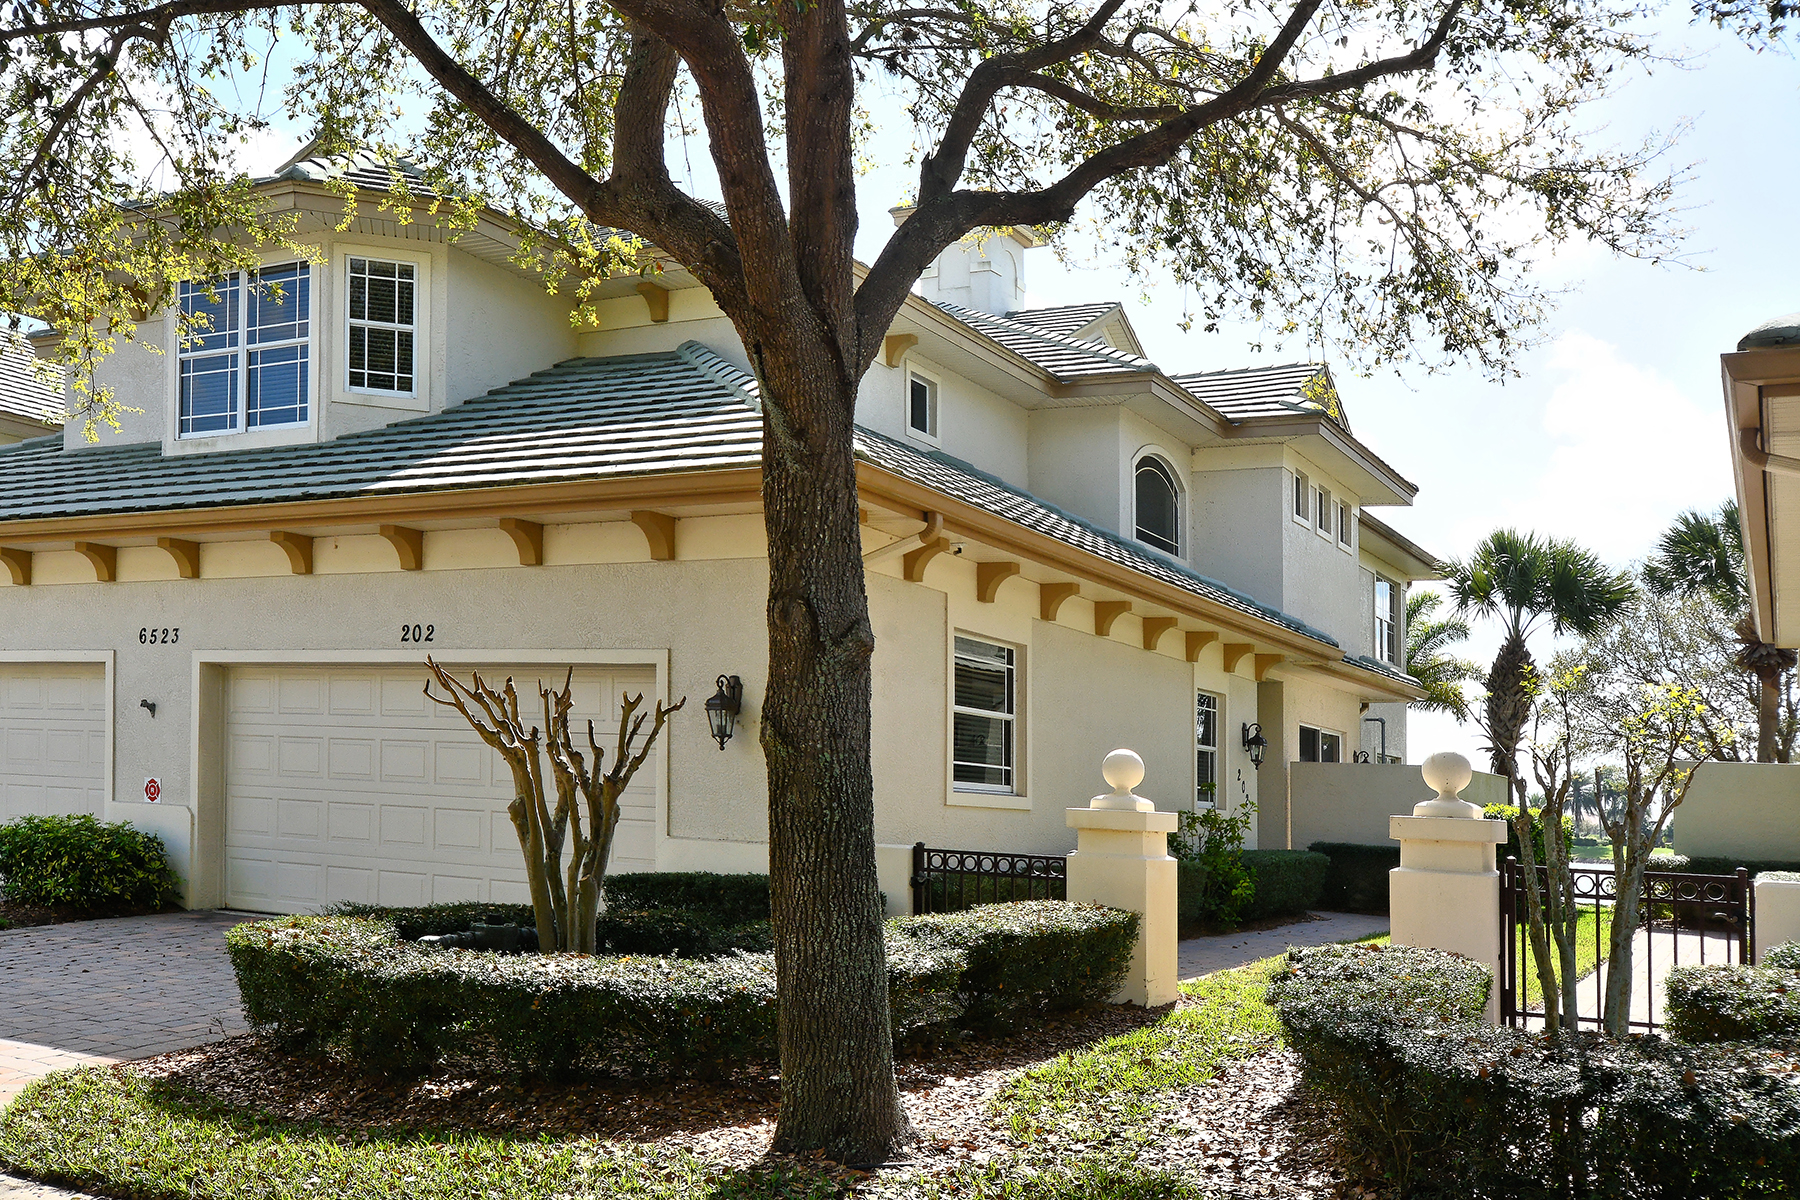 Condominium for Sale at THE MOORINGS AT EDGEWATER 6523 Moorings Point Cir 202 Lakewood Ranch, Florida 34202 United States